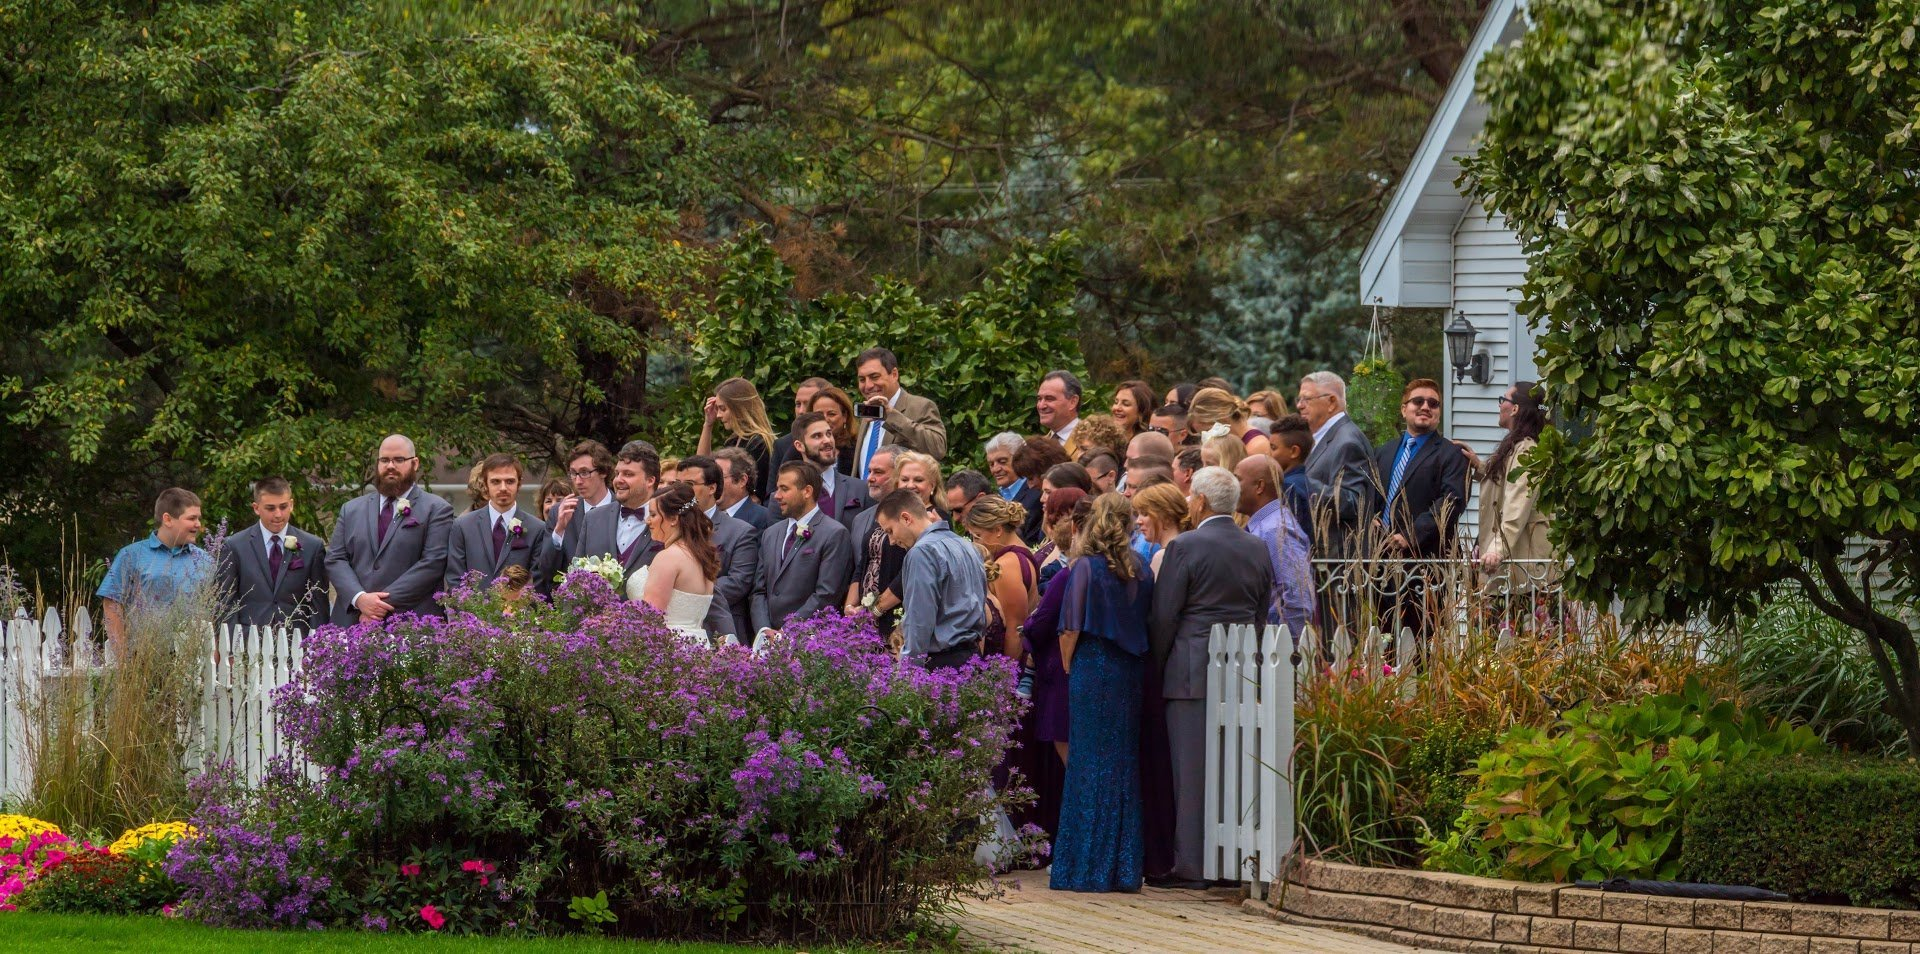 The whole wedding party and all the guests gather at our chapel from a large group photo. Instagram Gallery